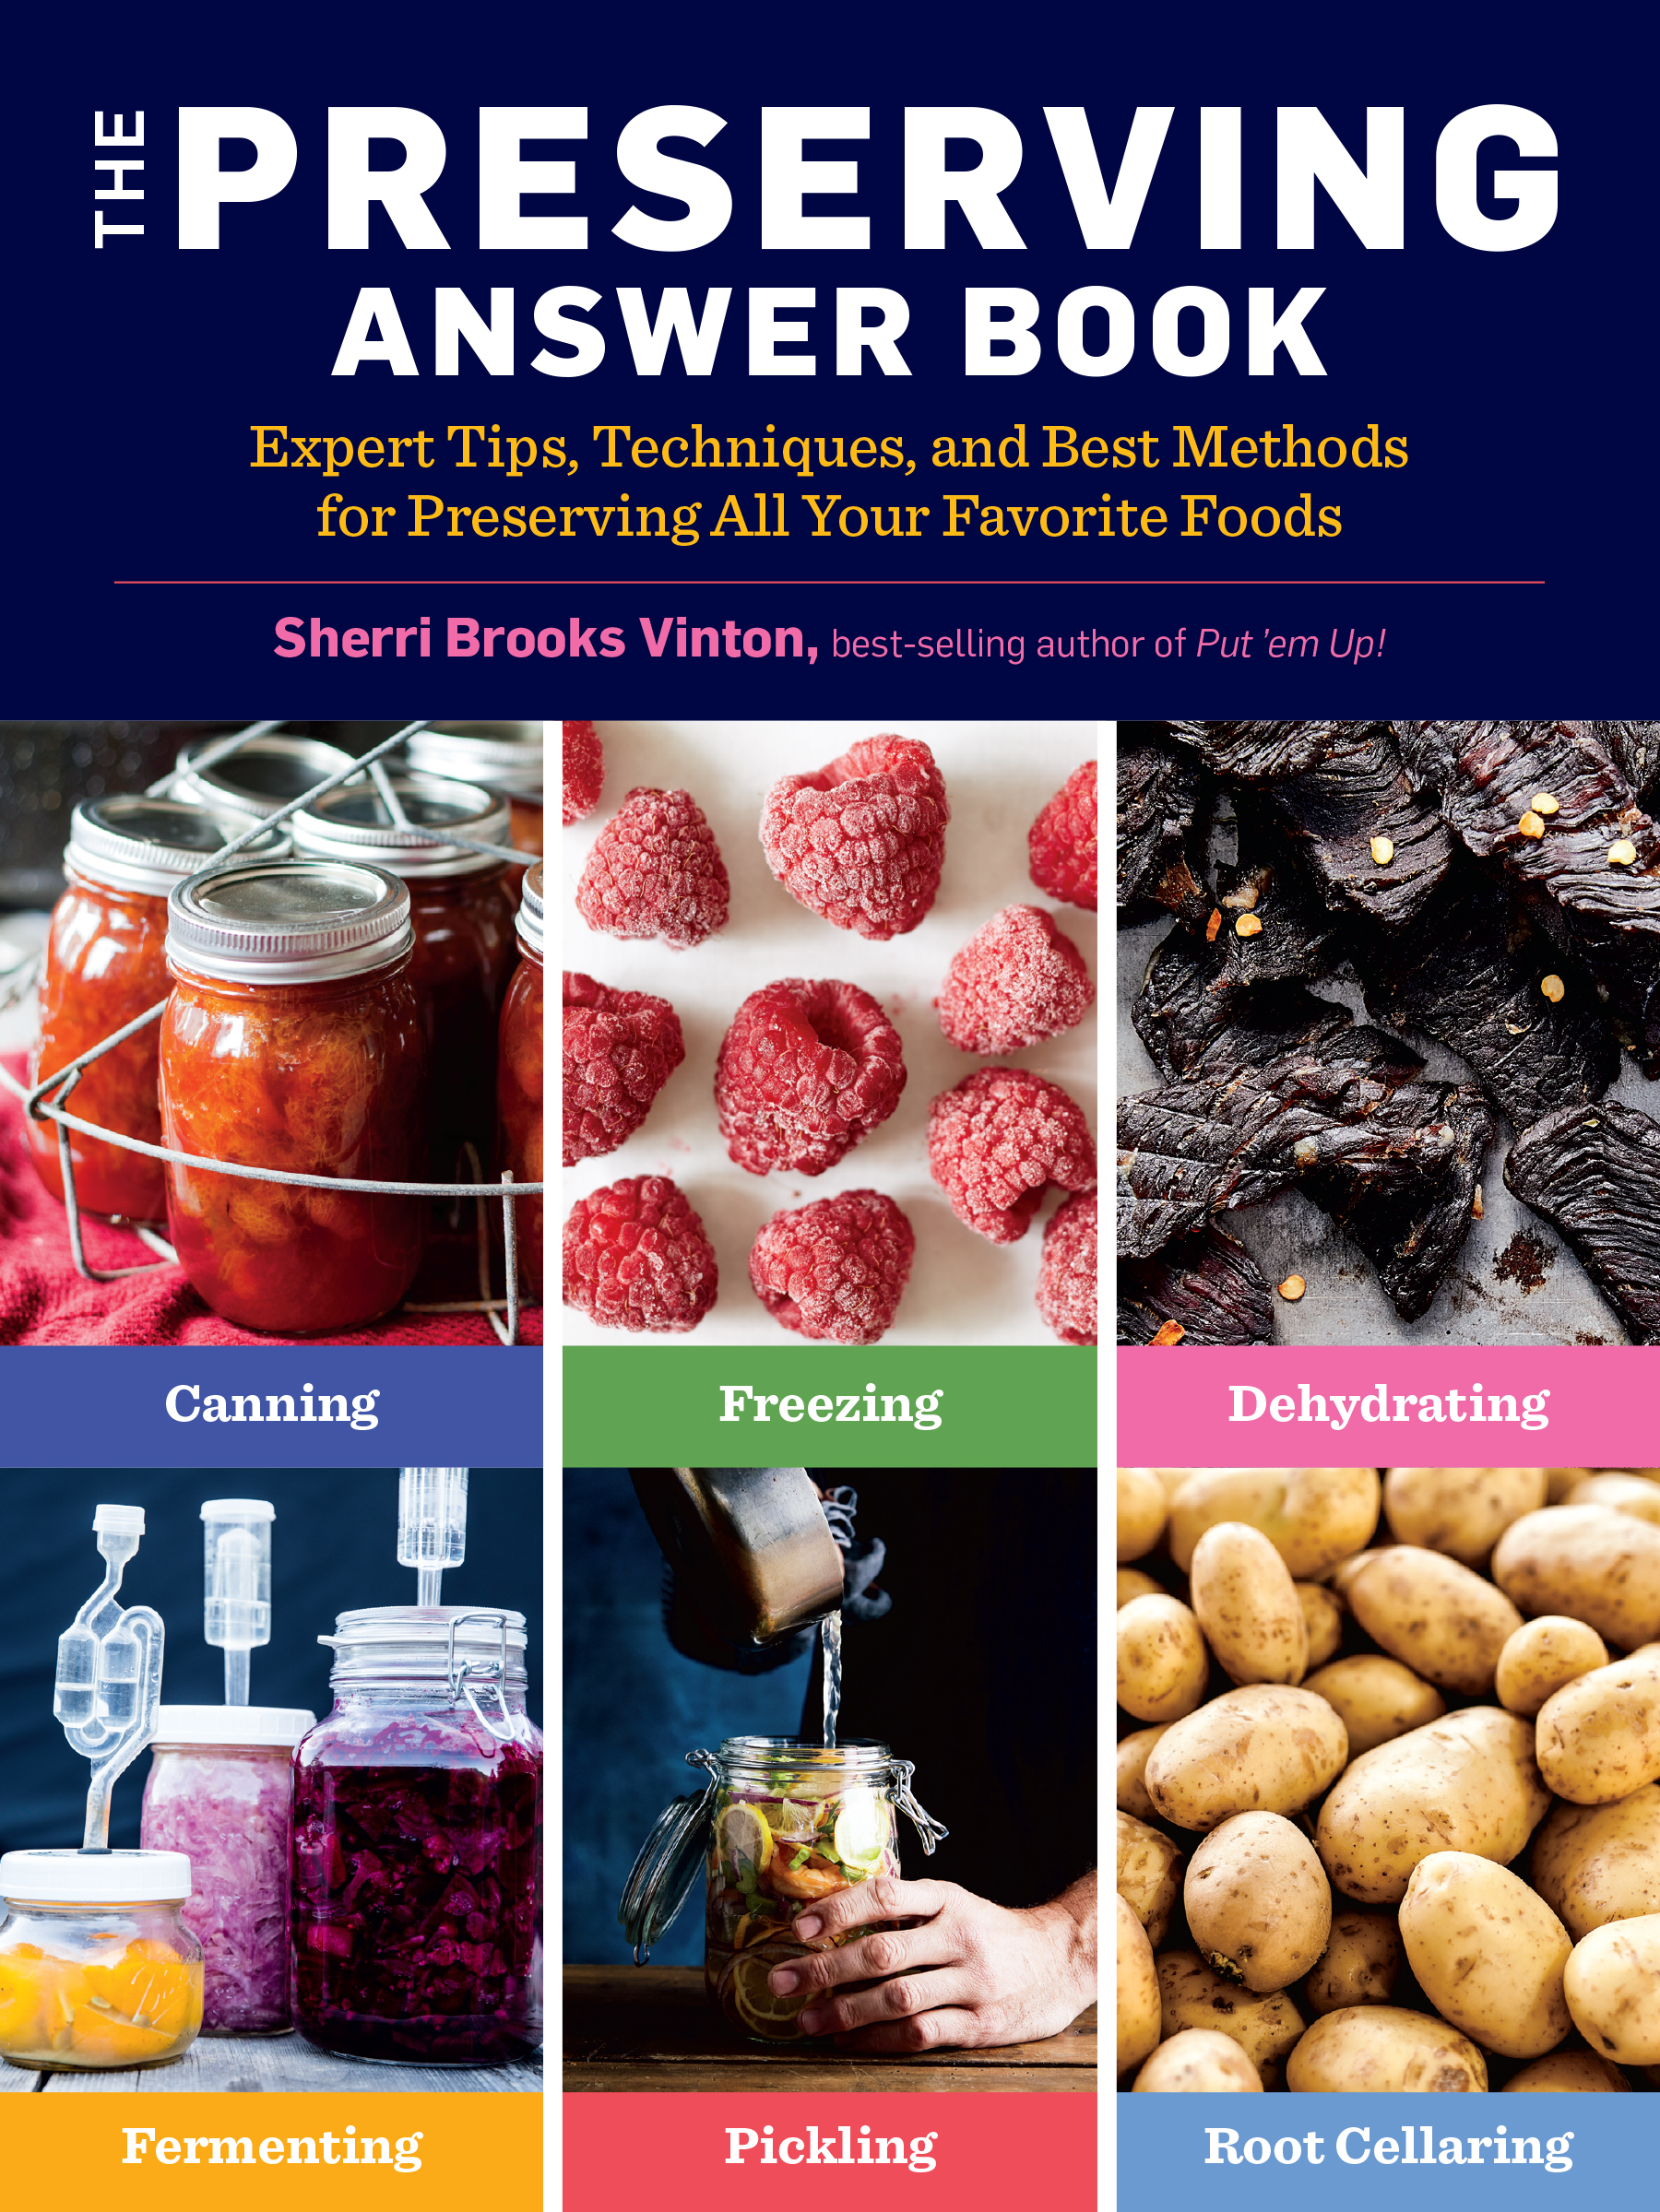 The Preserving Answer Book Expert Tips, Techniques, and Best Methods for Preserving All Your Favorite Foods - Sherri Brooks Vinton